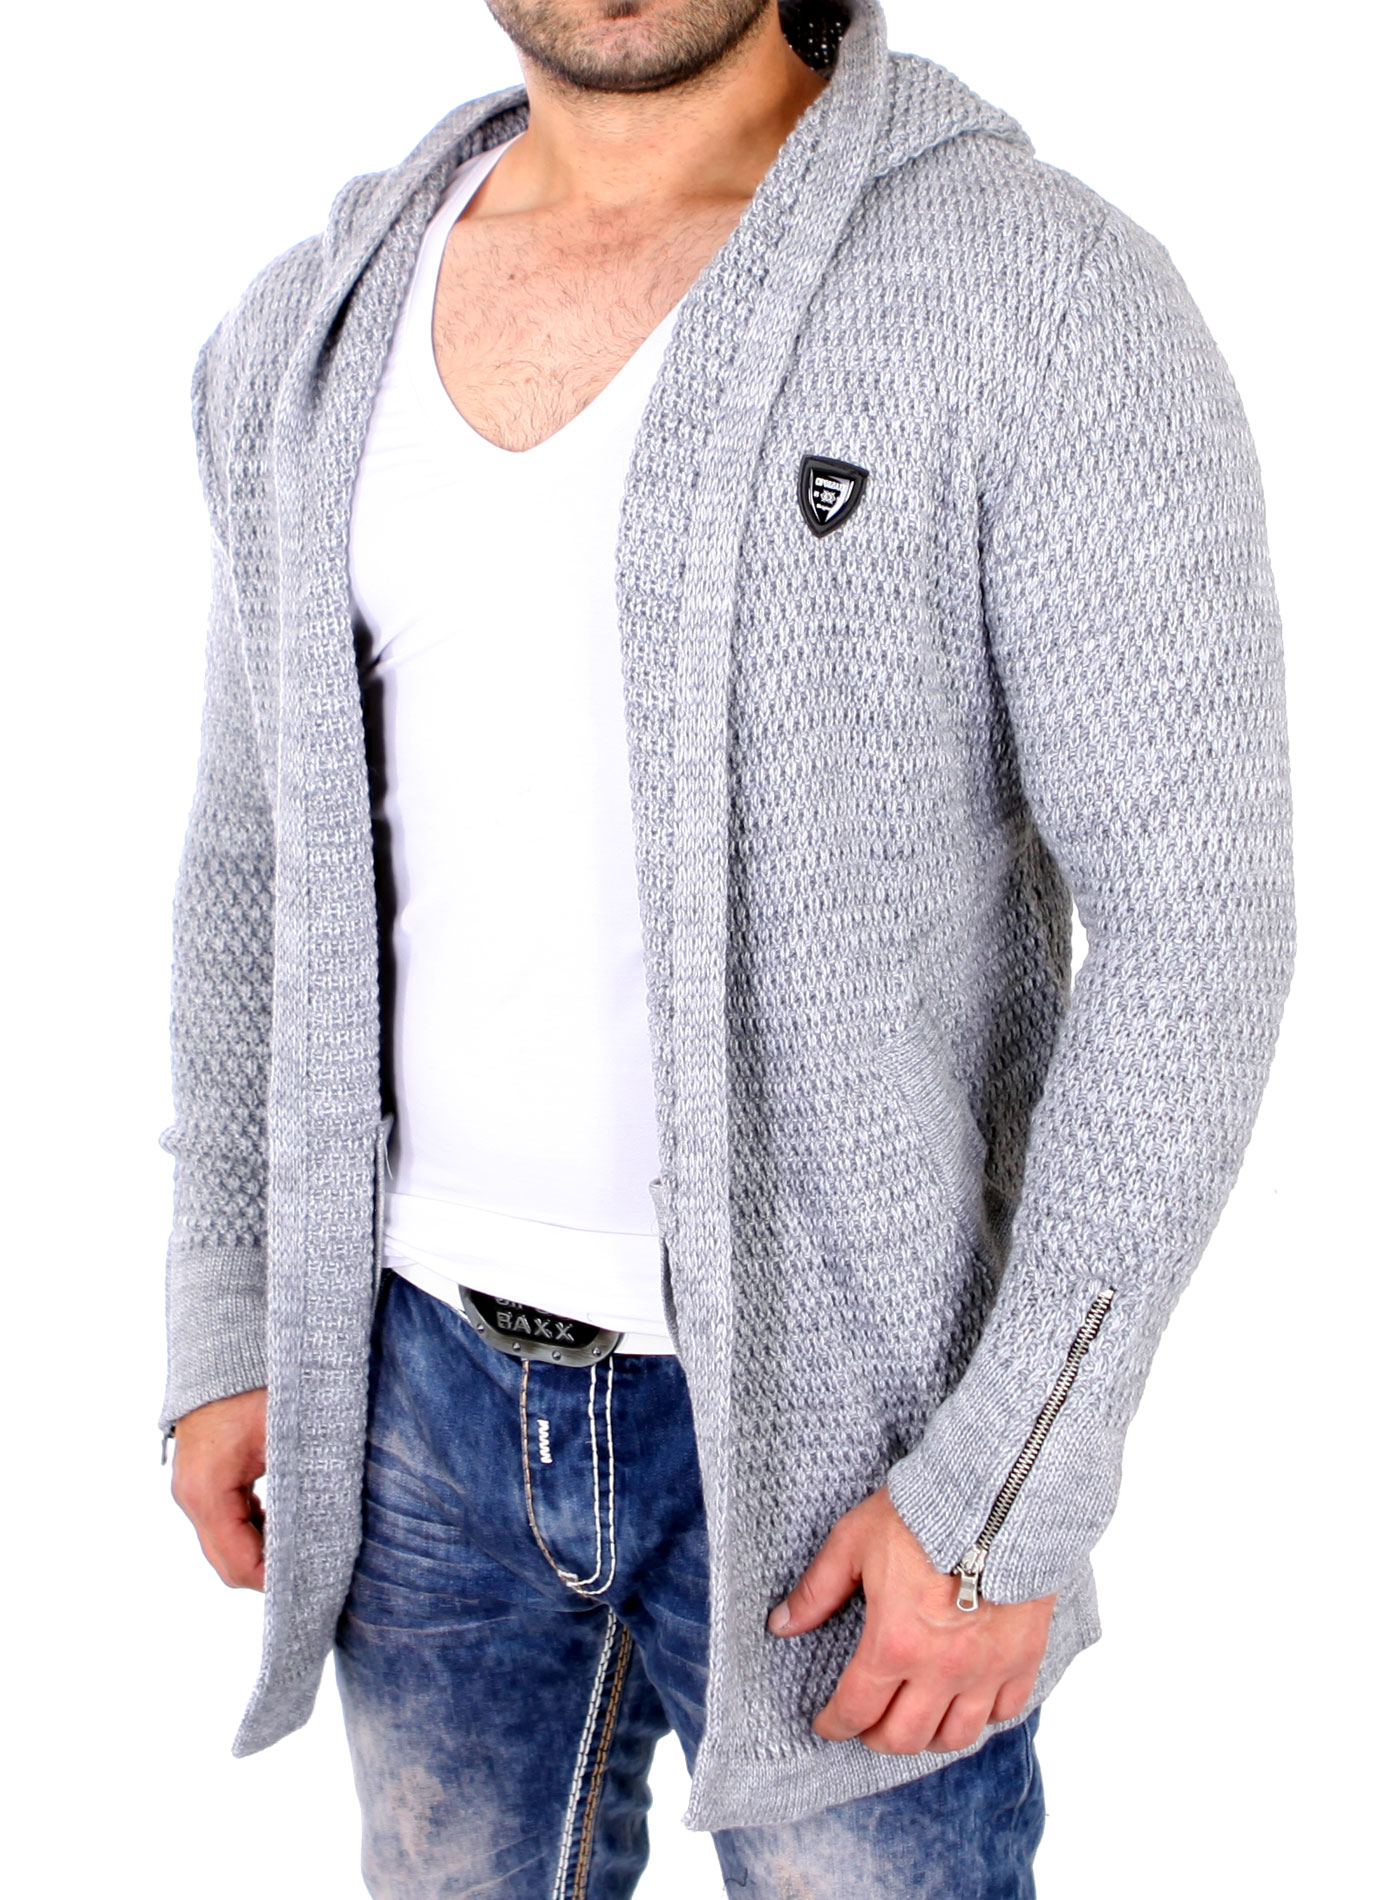 weste grob strick jacke v neck cardigan lang mit kapuze c 103 ebay. Black Bedroom Furniture Sets. Home Design Ideas